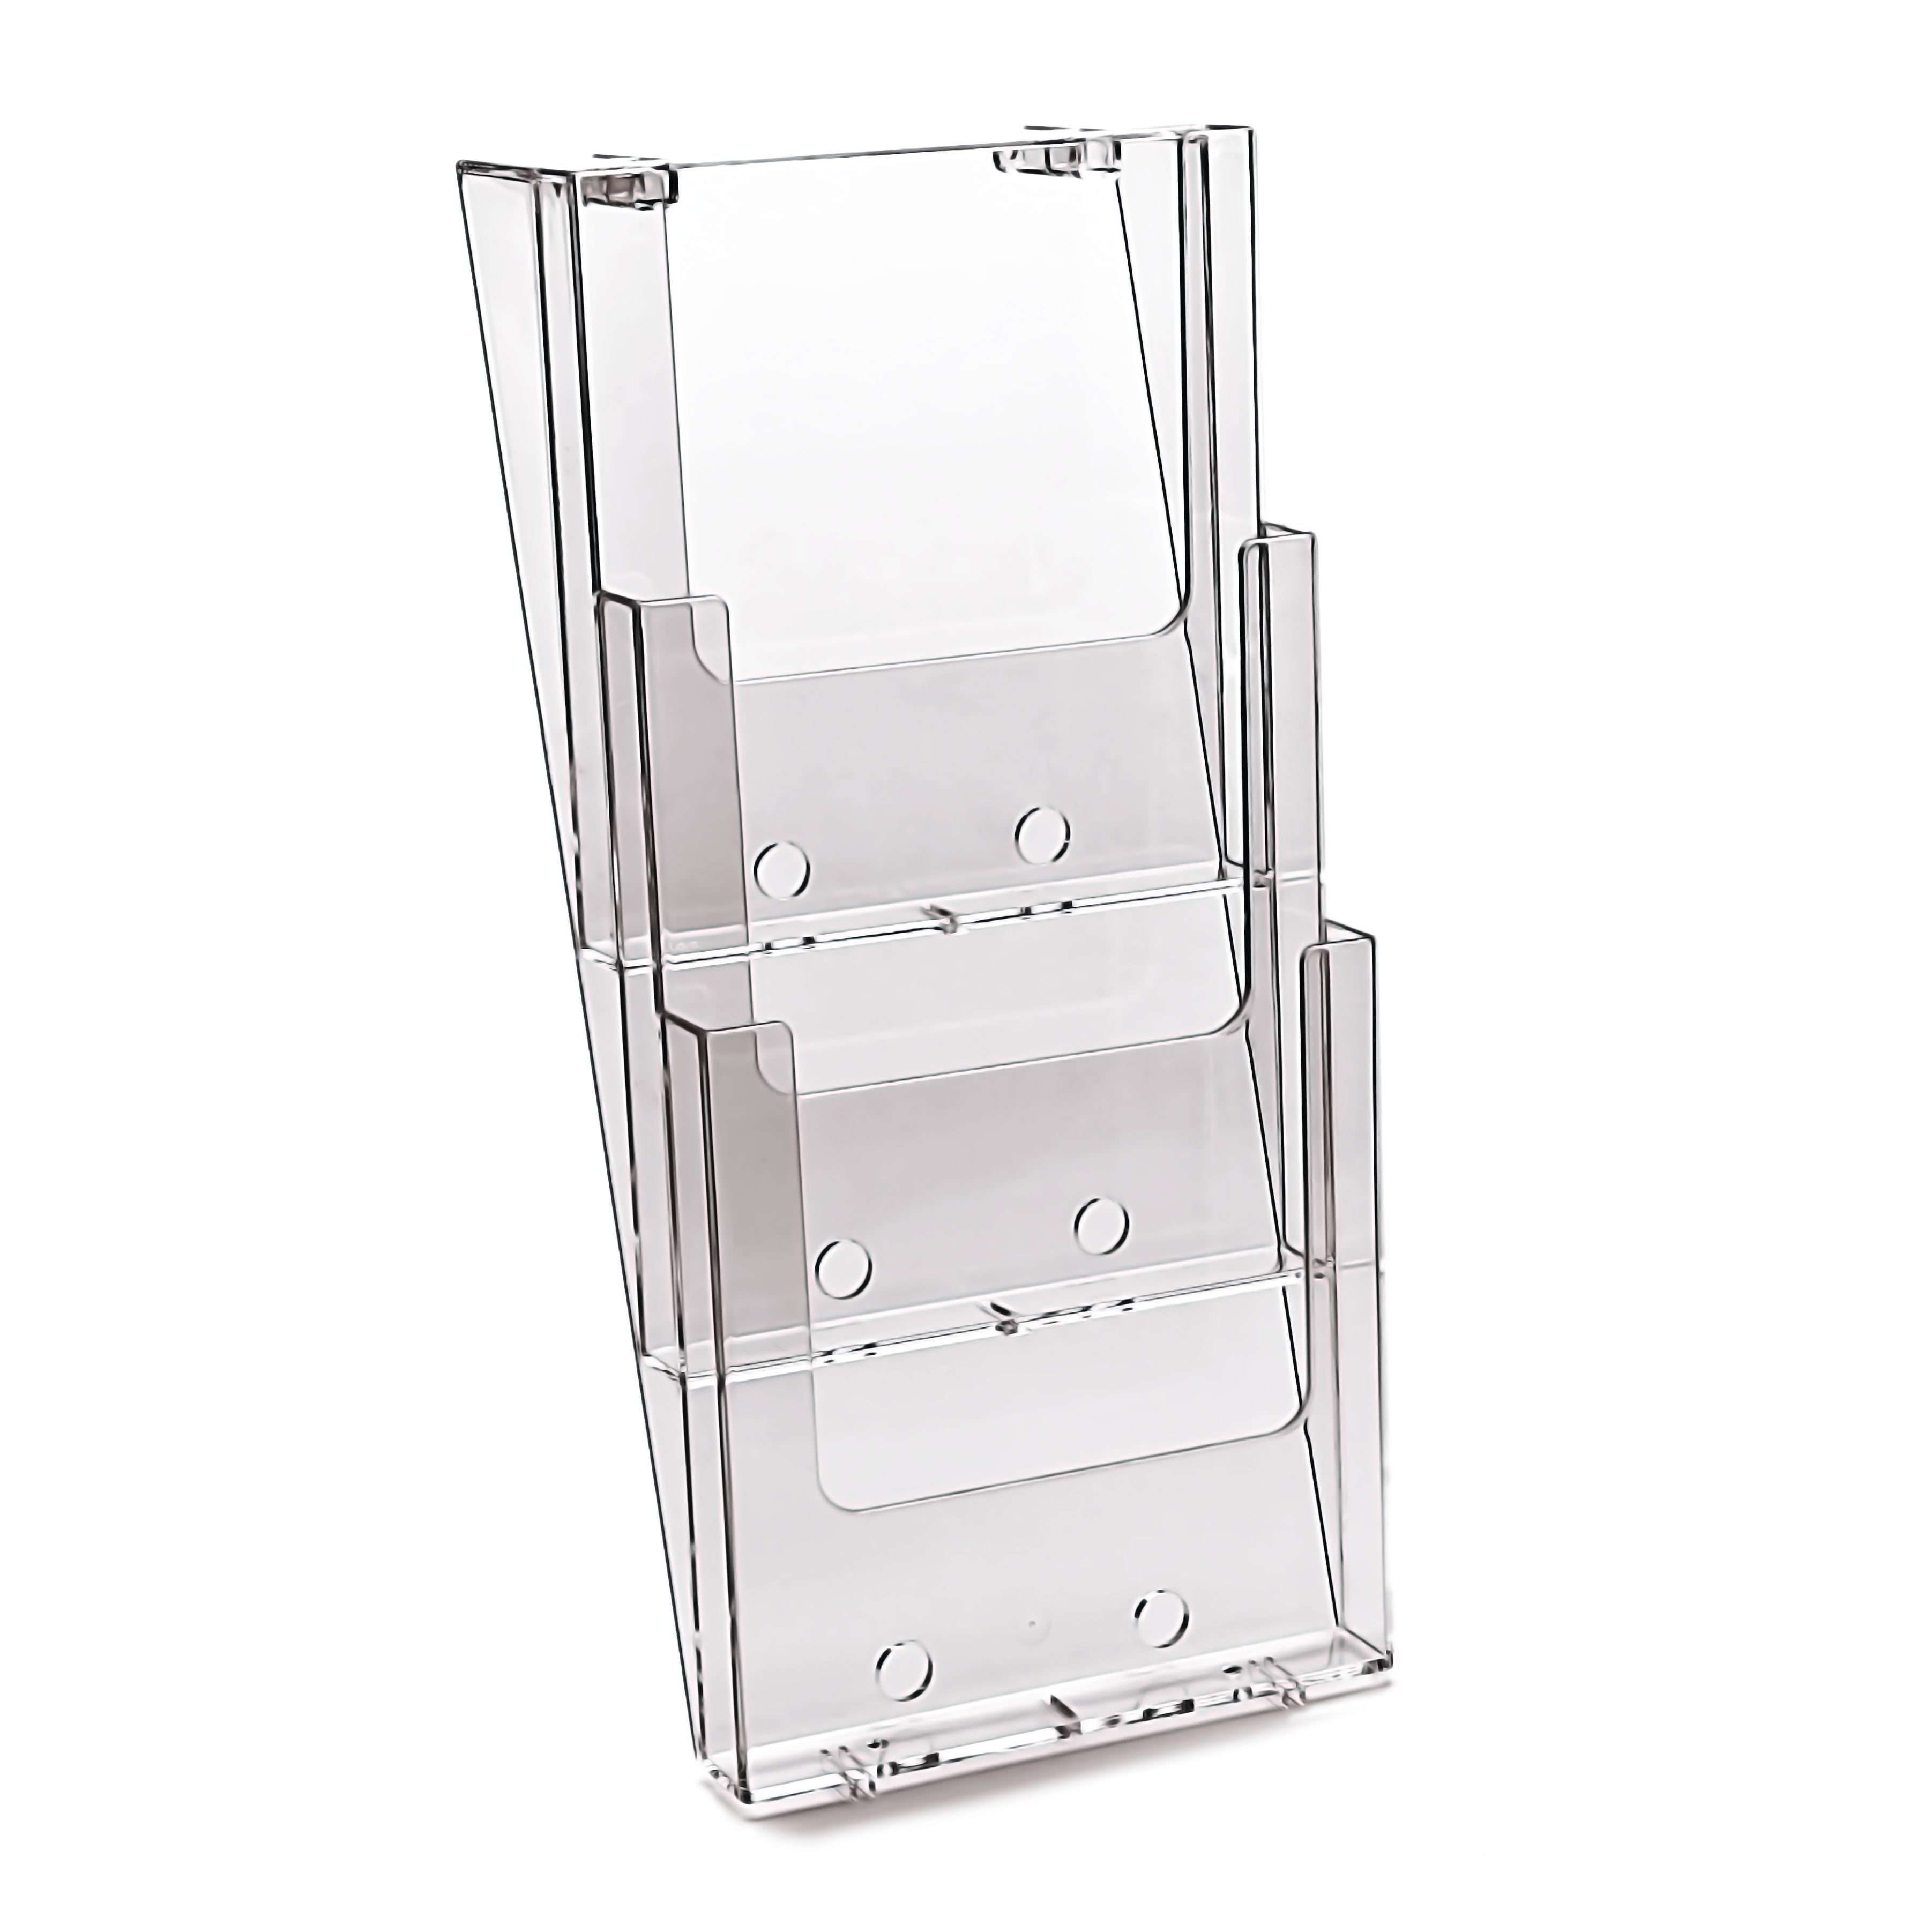 eofficeproducts literature wall each click enlarge challenge mount furniture brochure pocket ltd leaflets rack stand to storage tall industries filing